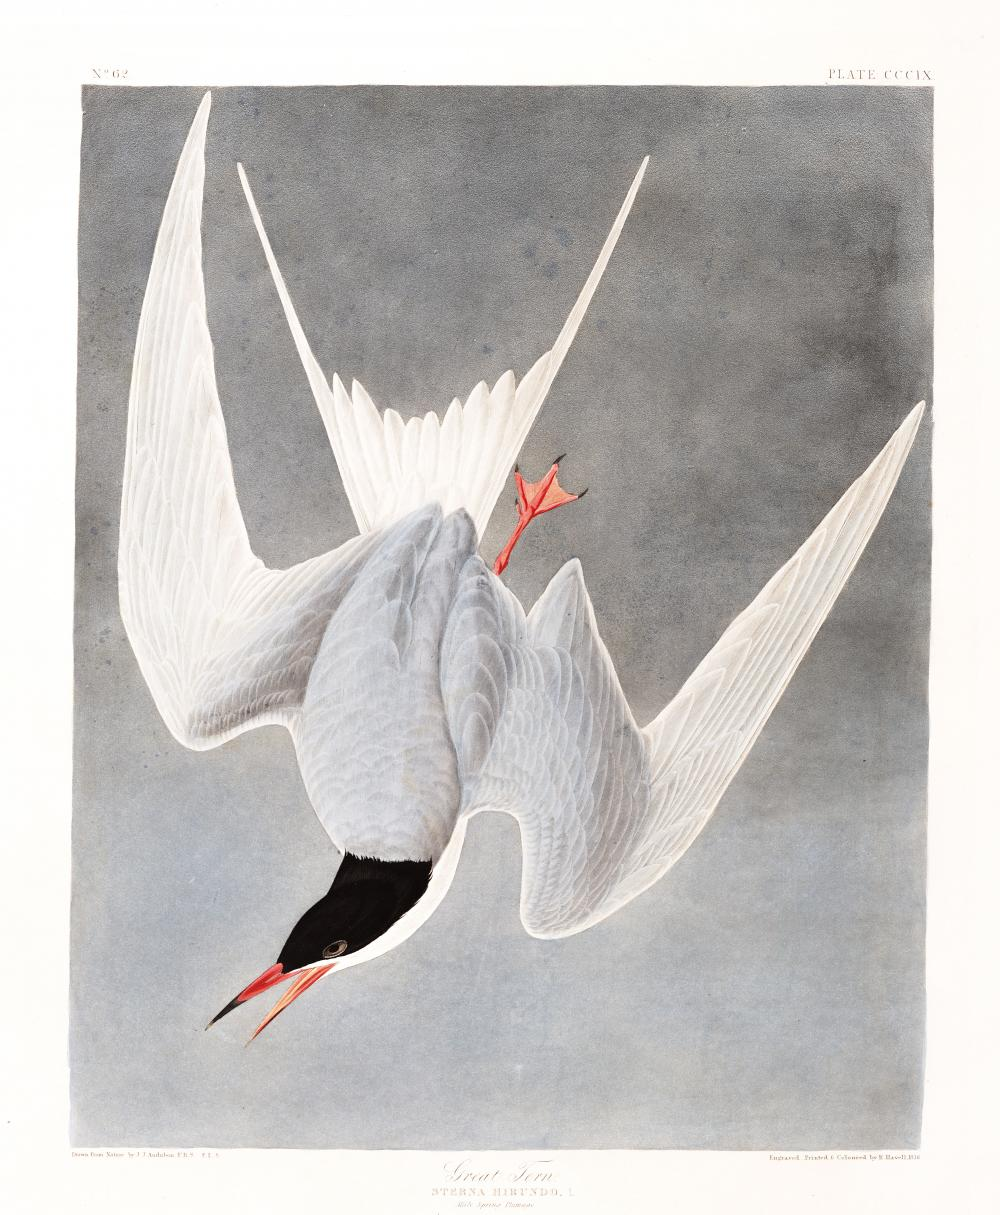 Illustration of the common tern